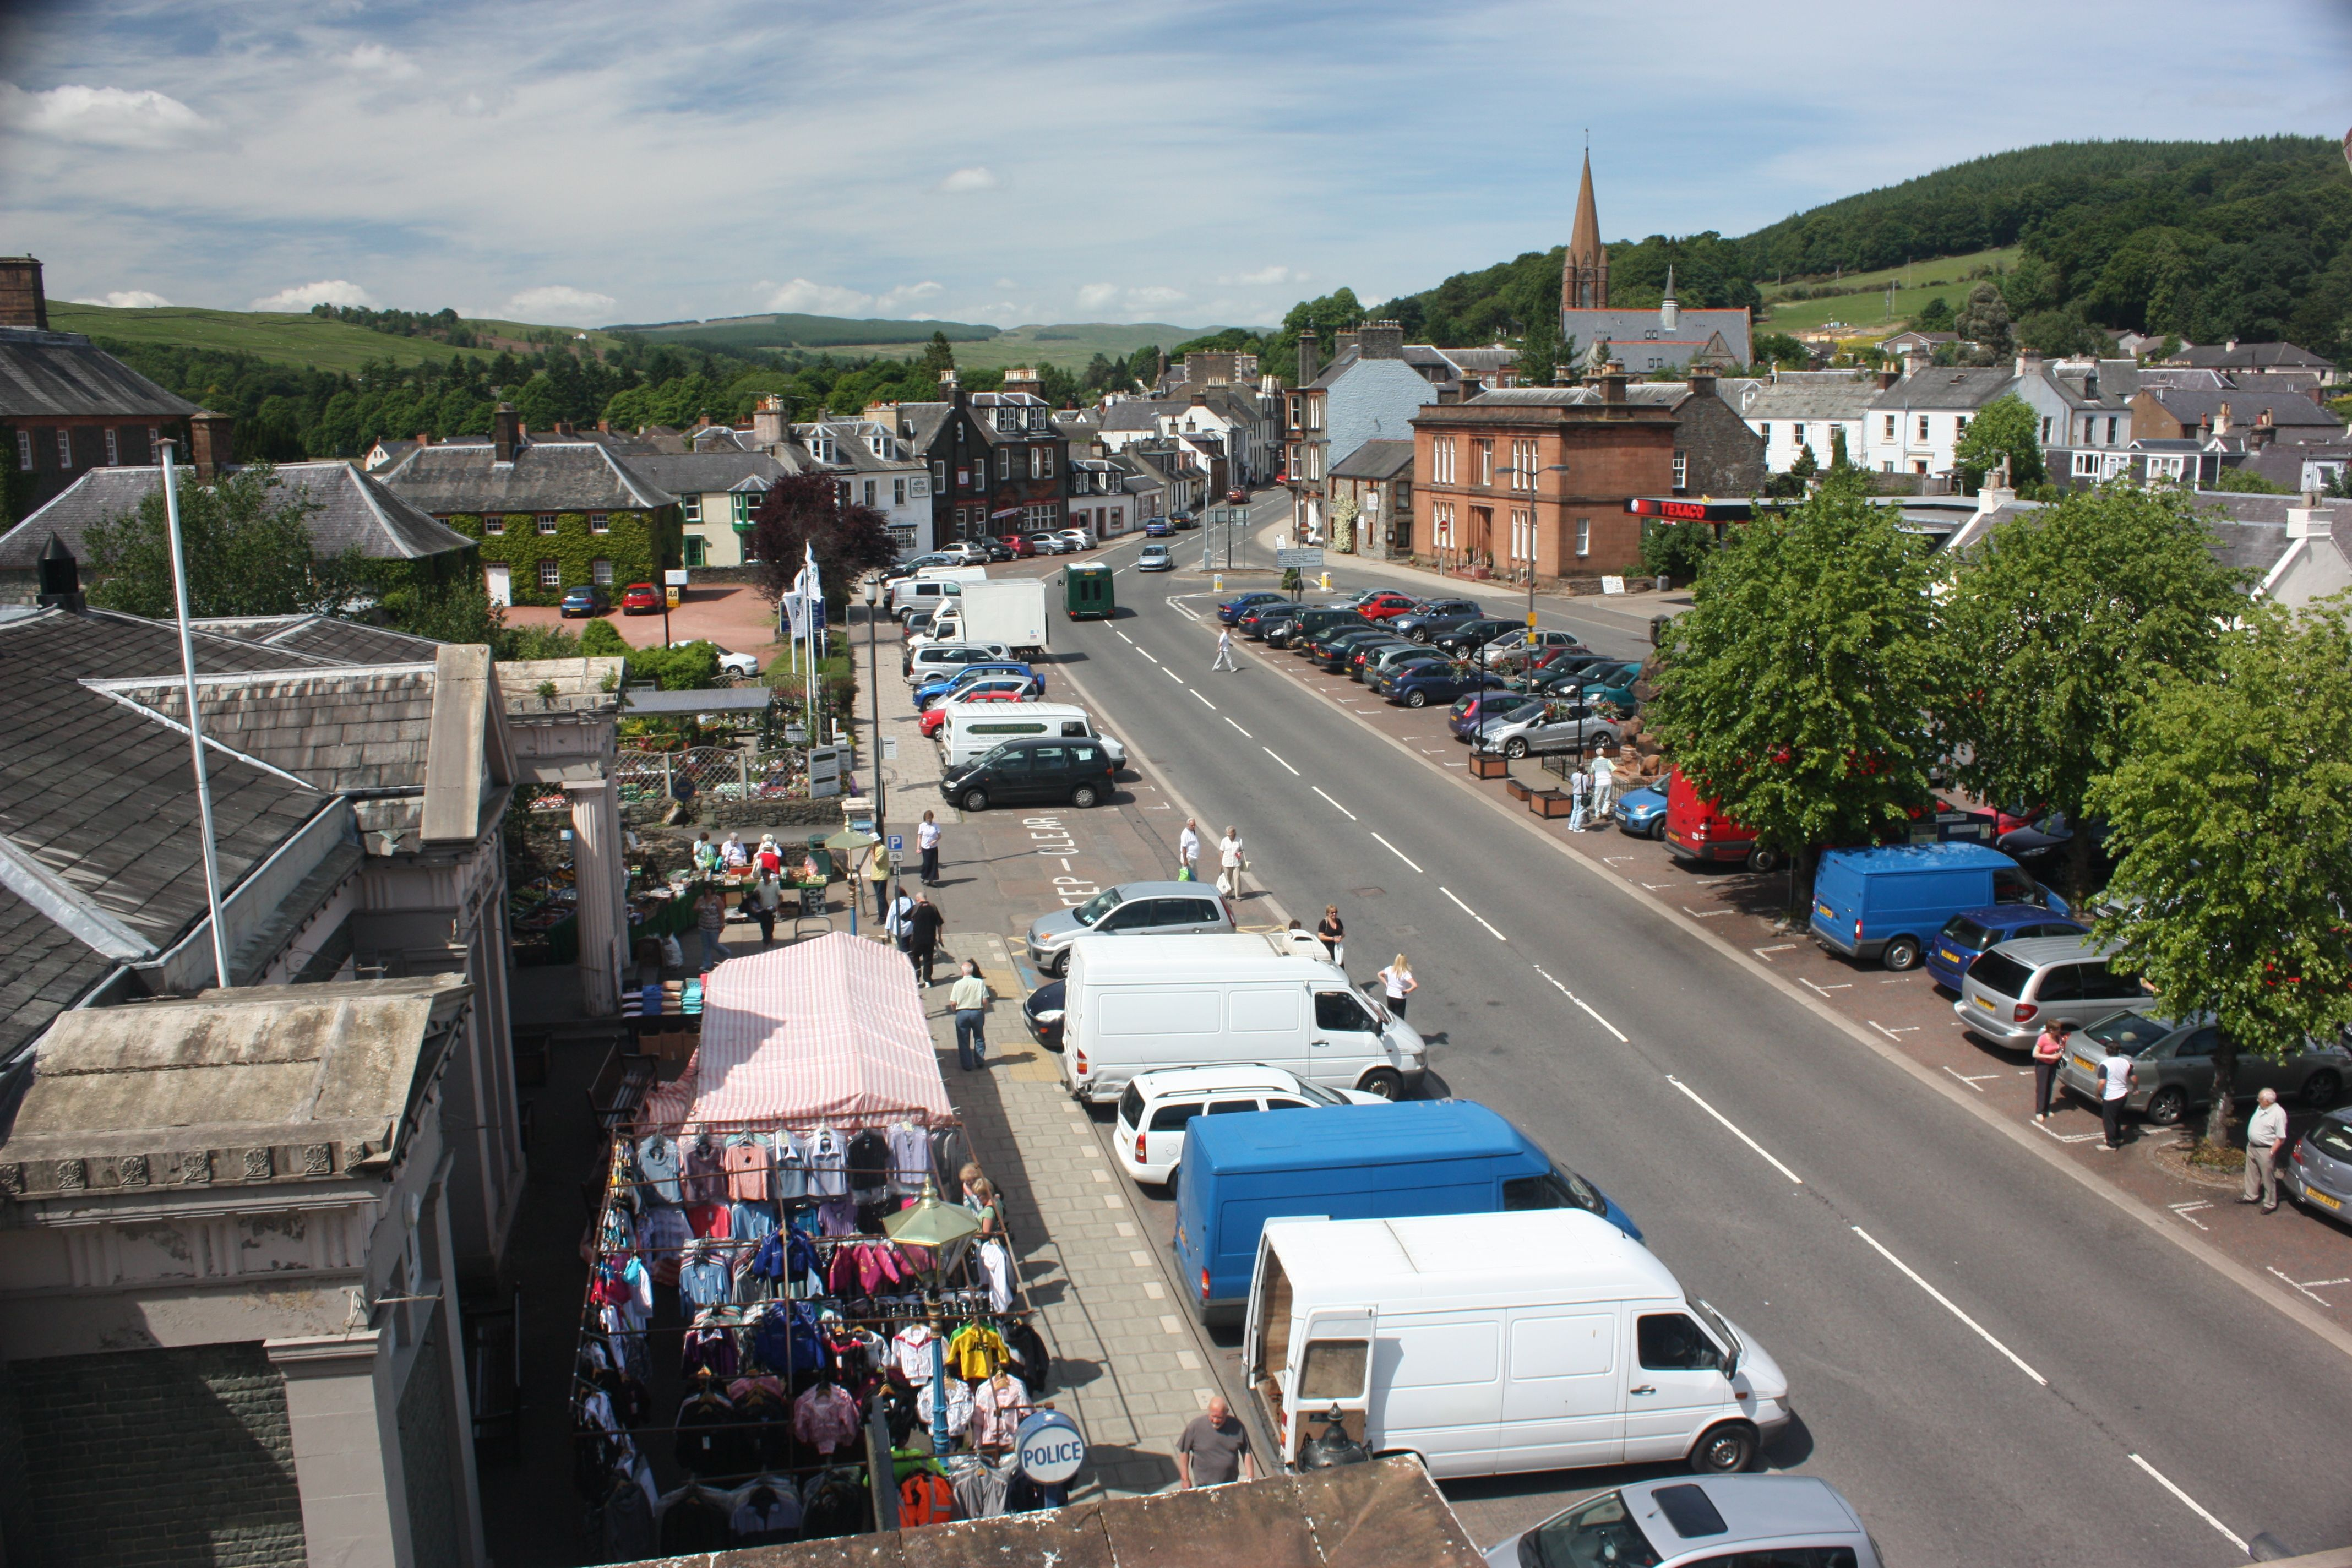 Moffat High Street viewed from the roof of the Annandale